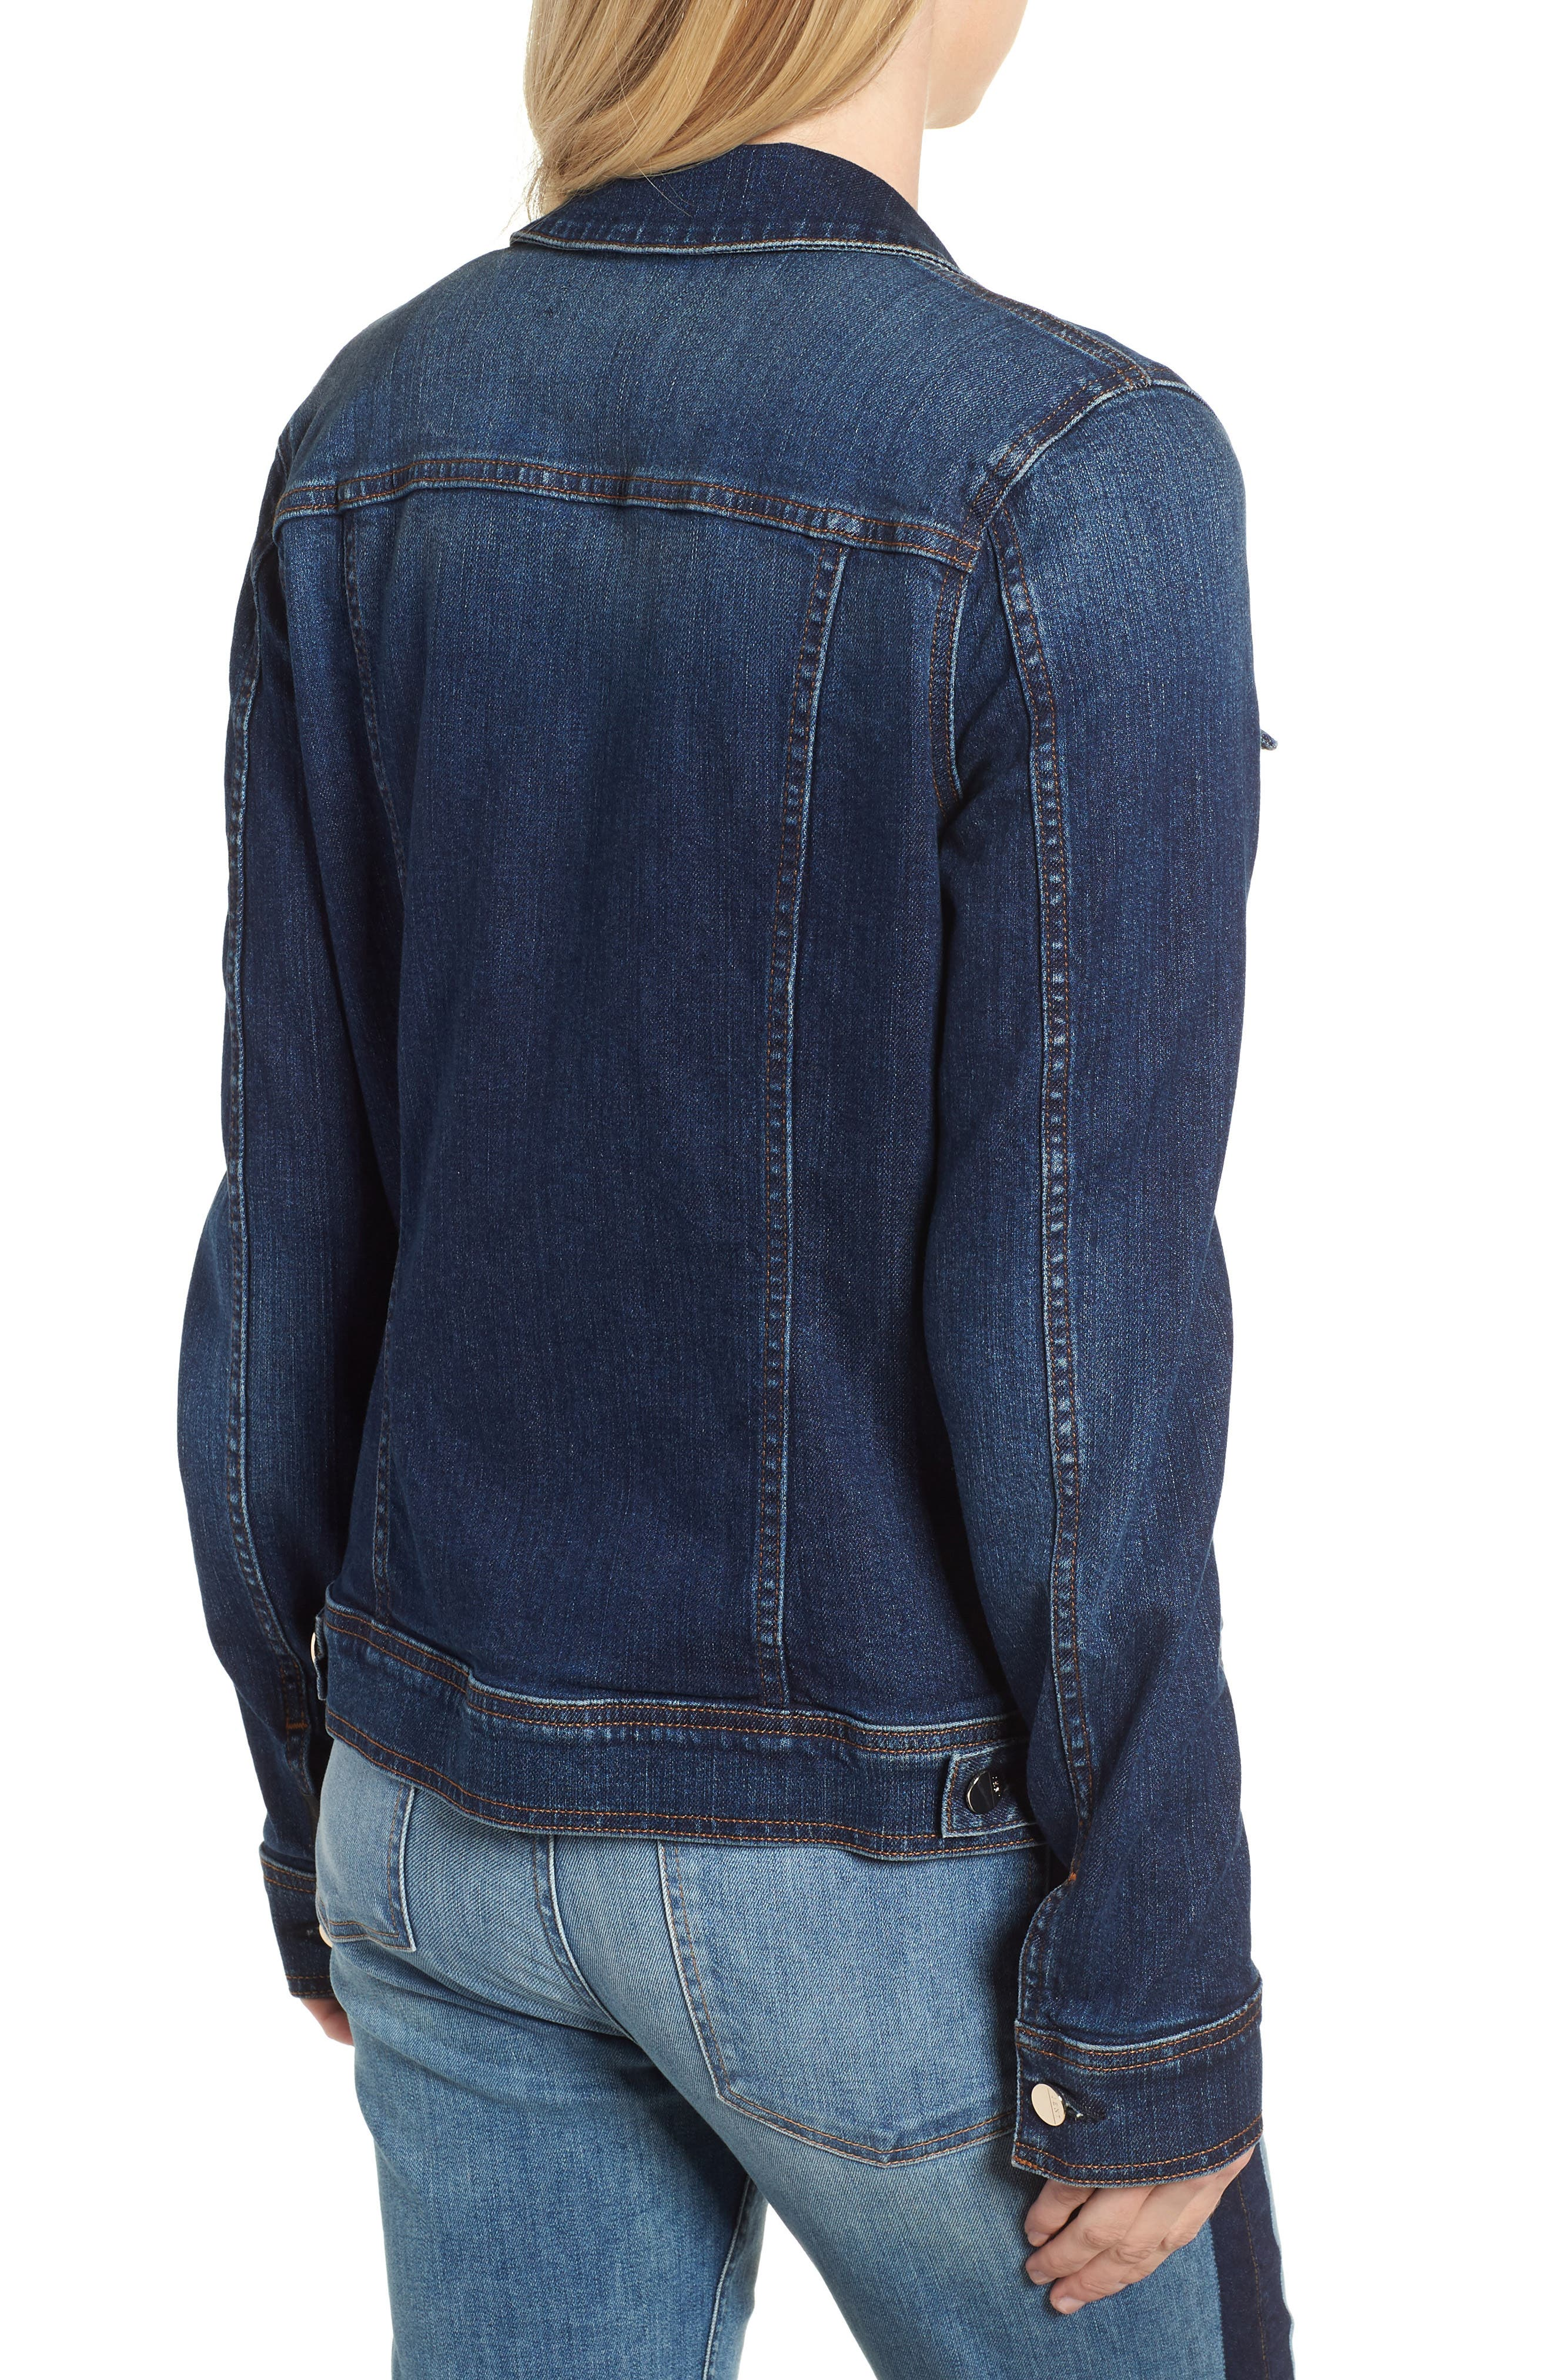 JEN7 BY 7 FOR ALL MANKIND, Classic Denim Jacket, Alternate thumbnail 2, color, 403